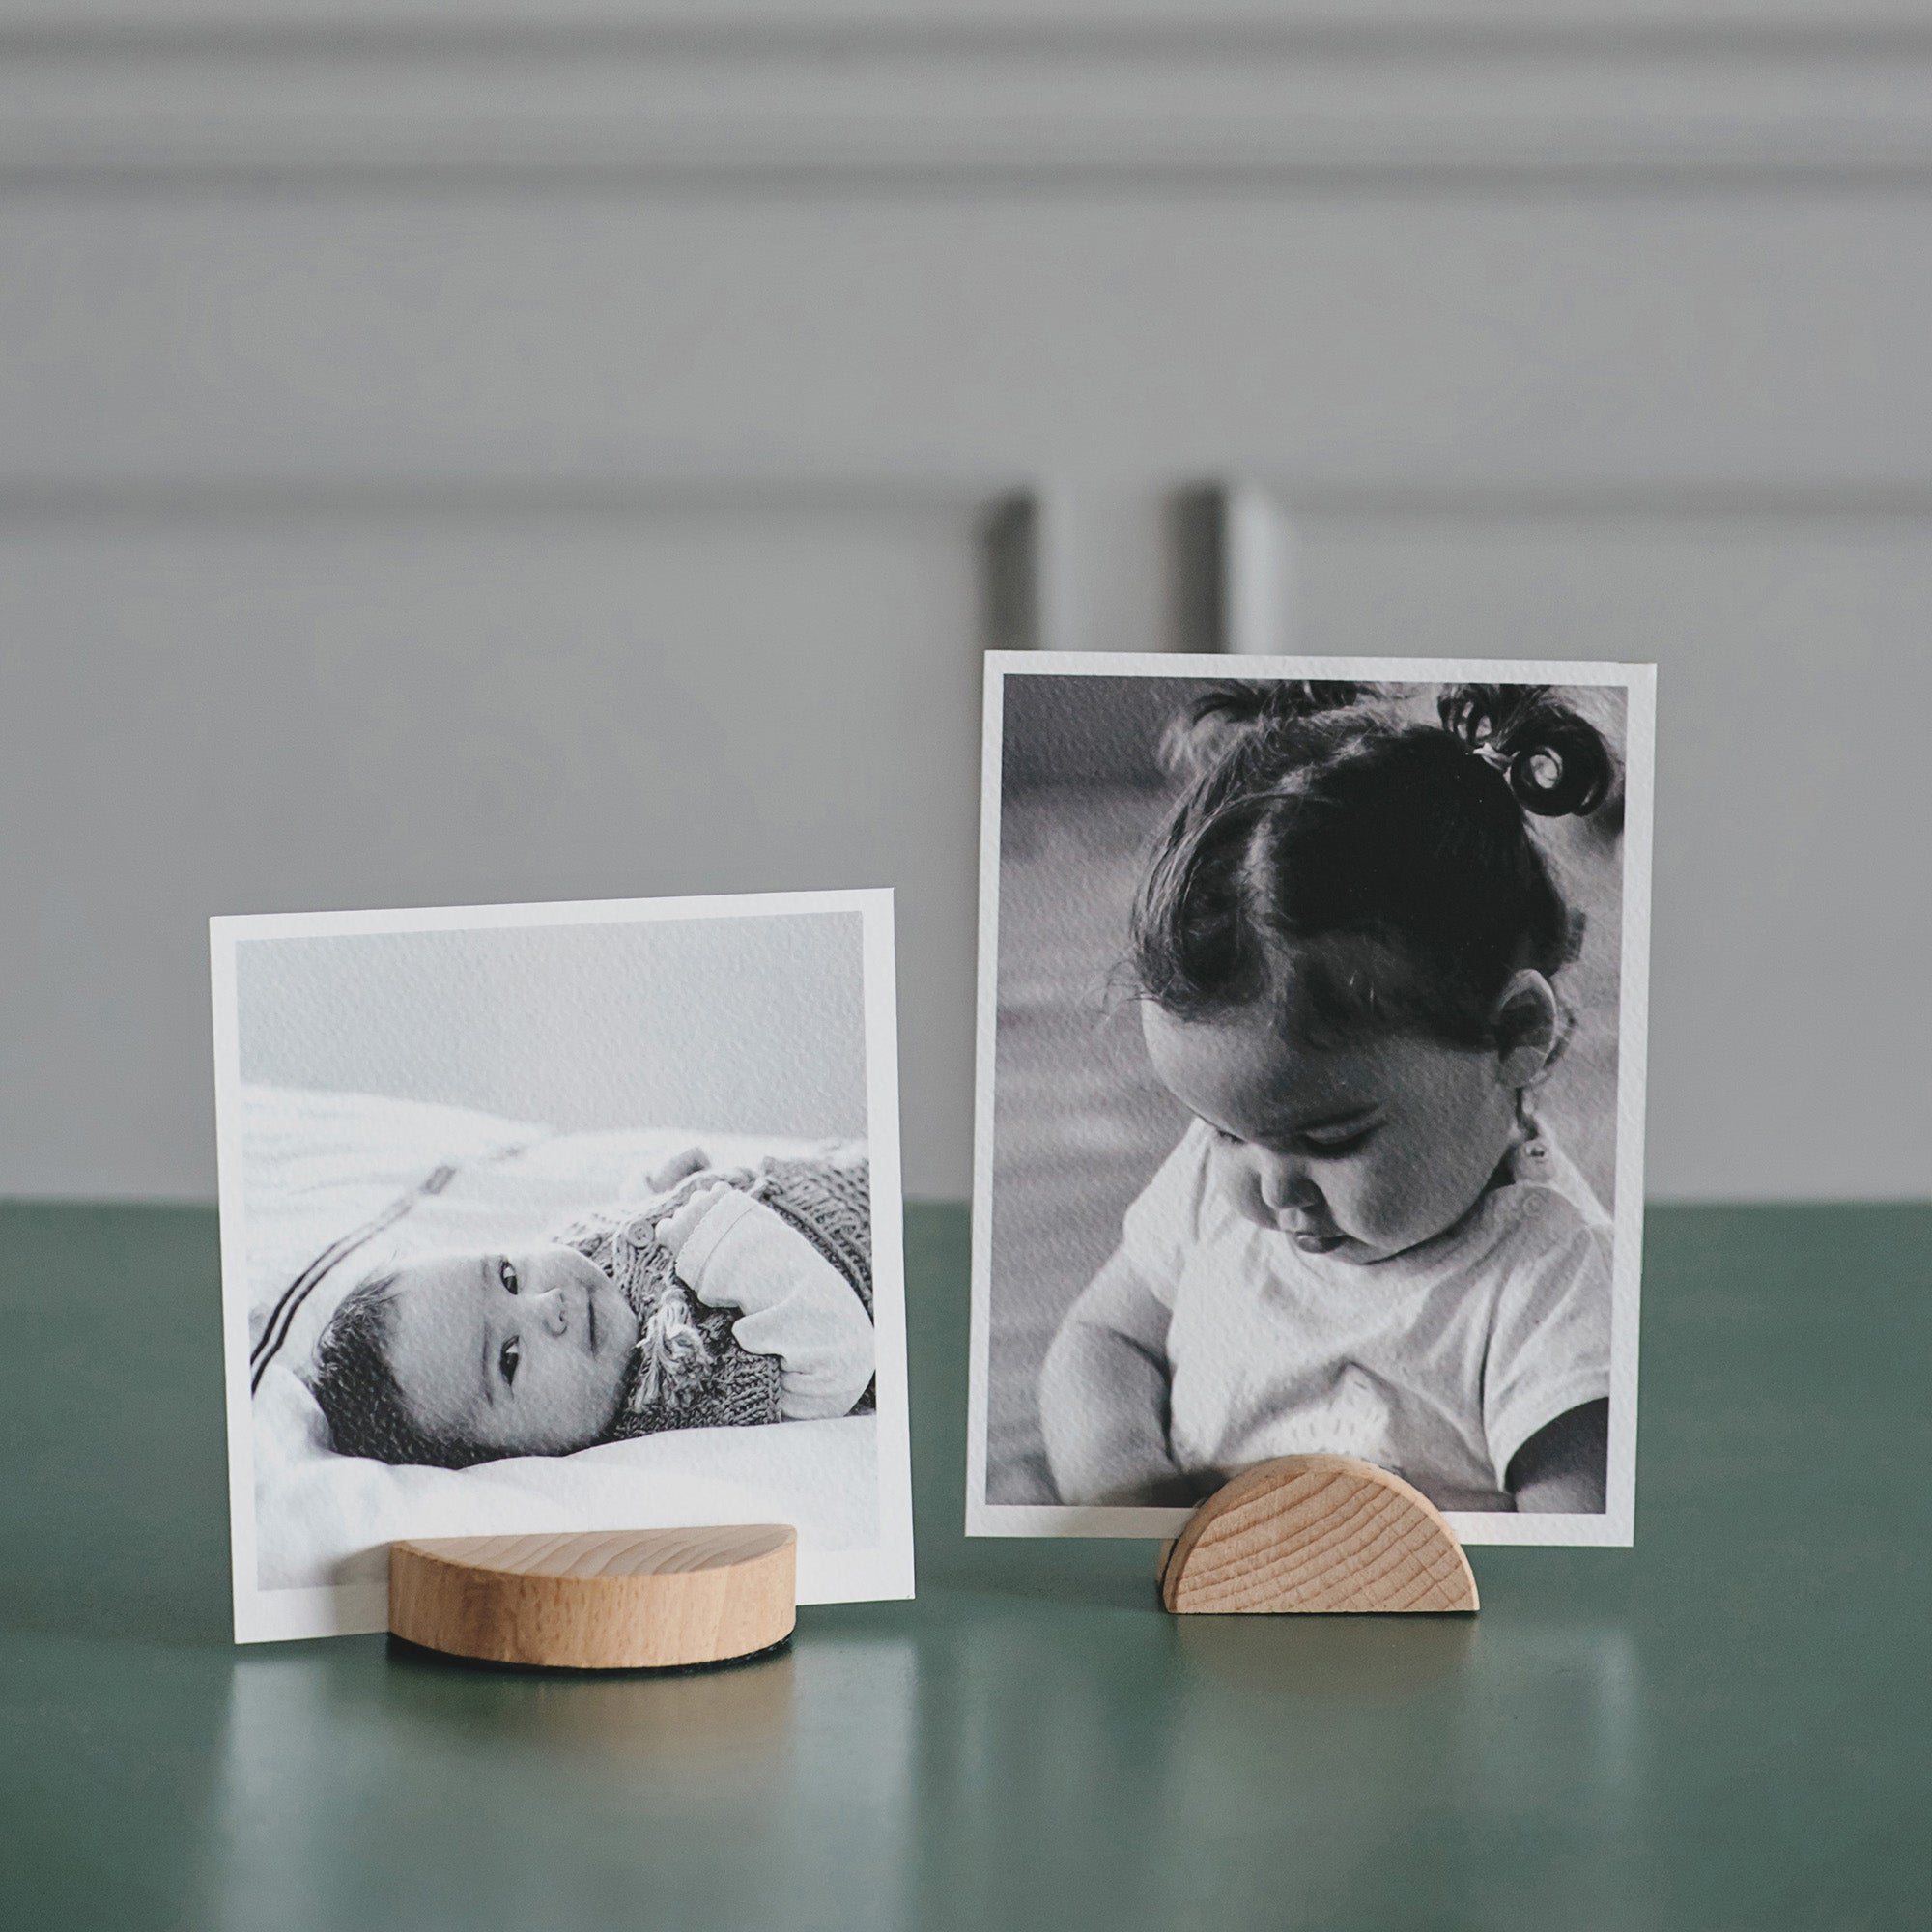 Magnetic Photo Displays